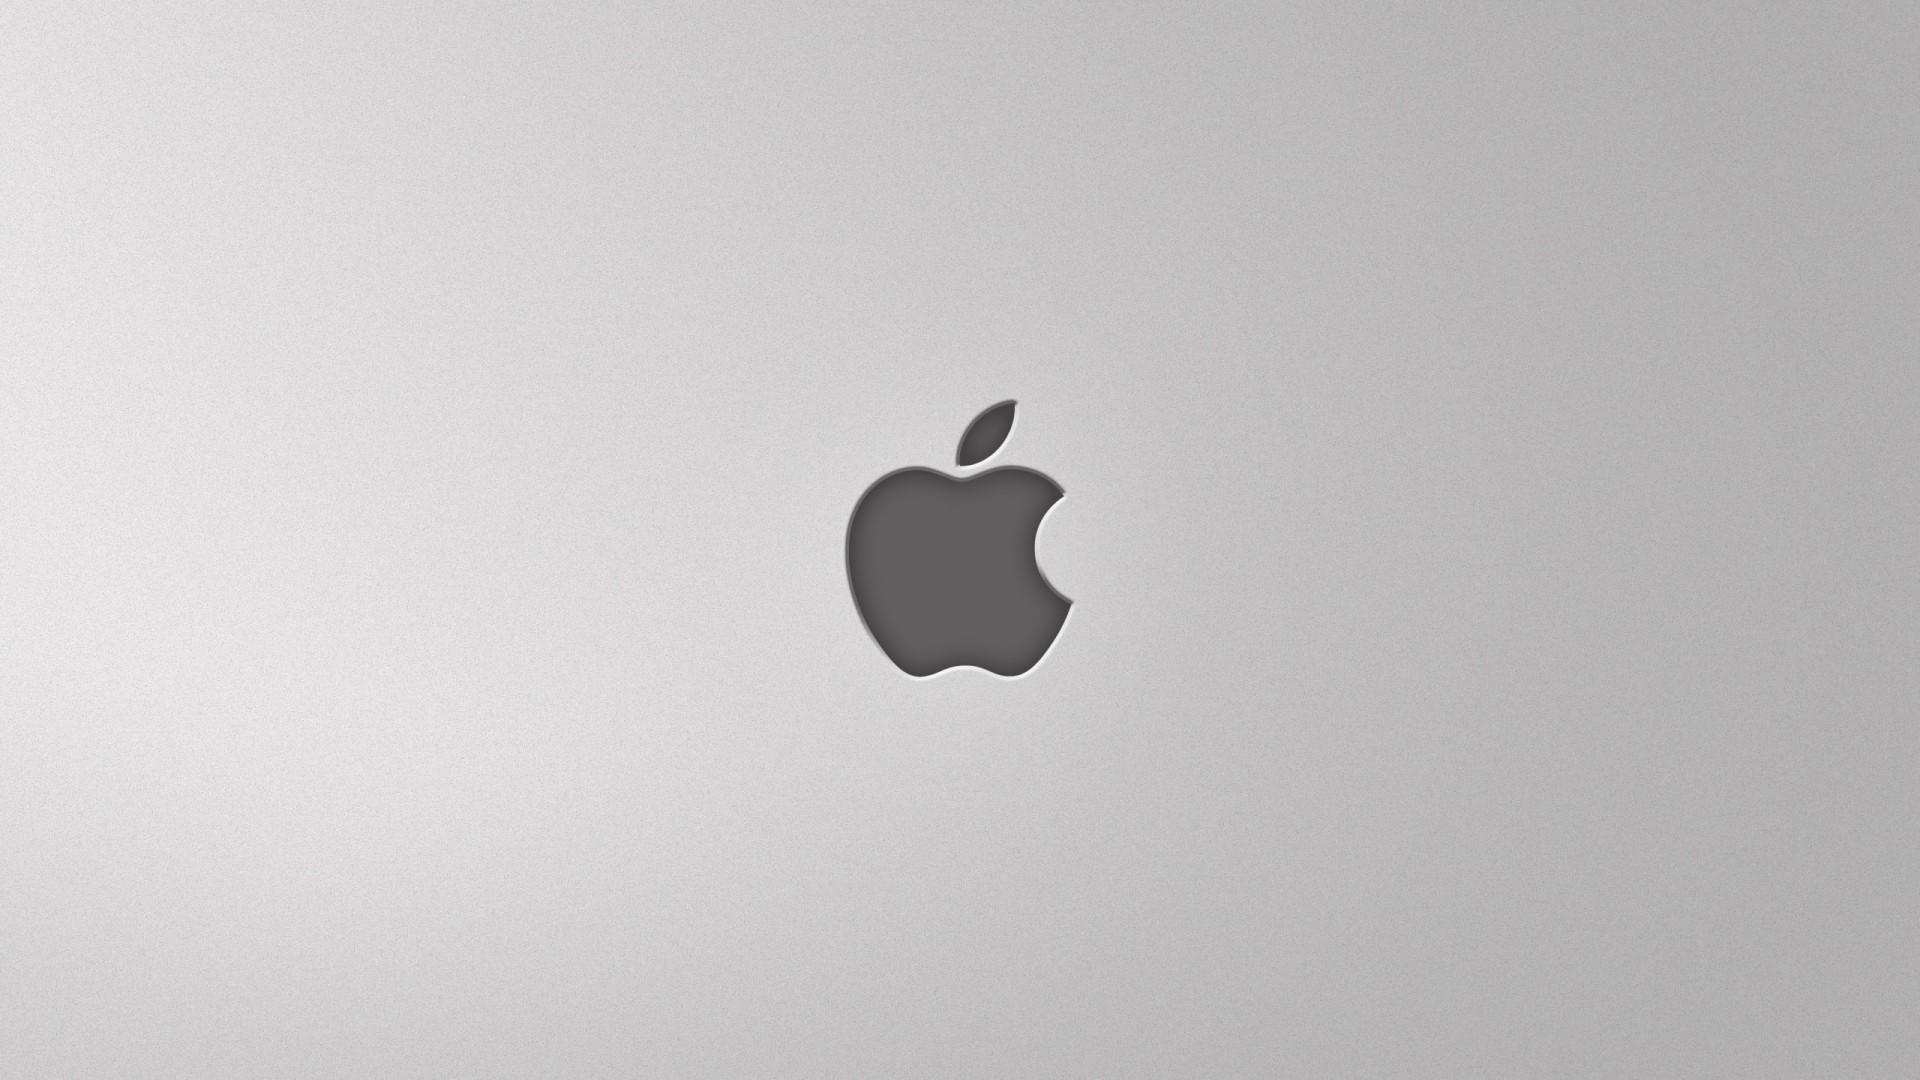 Mac Logo Wallpaper - WallpaperSafari